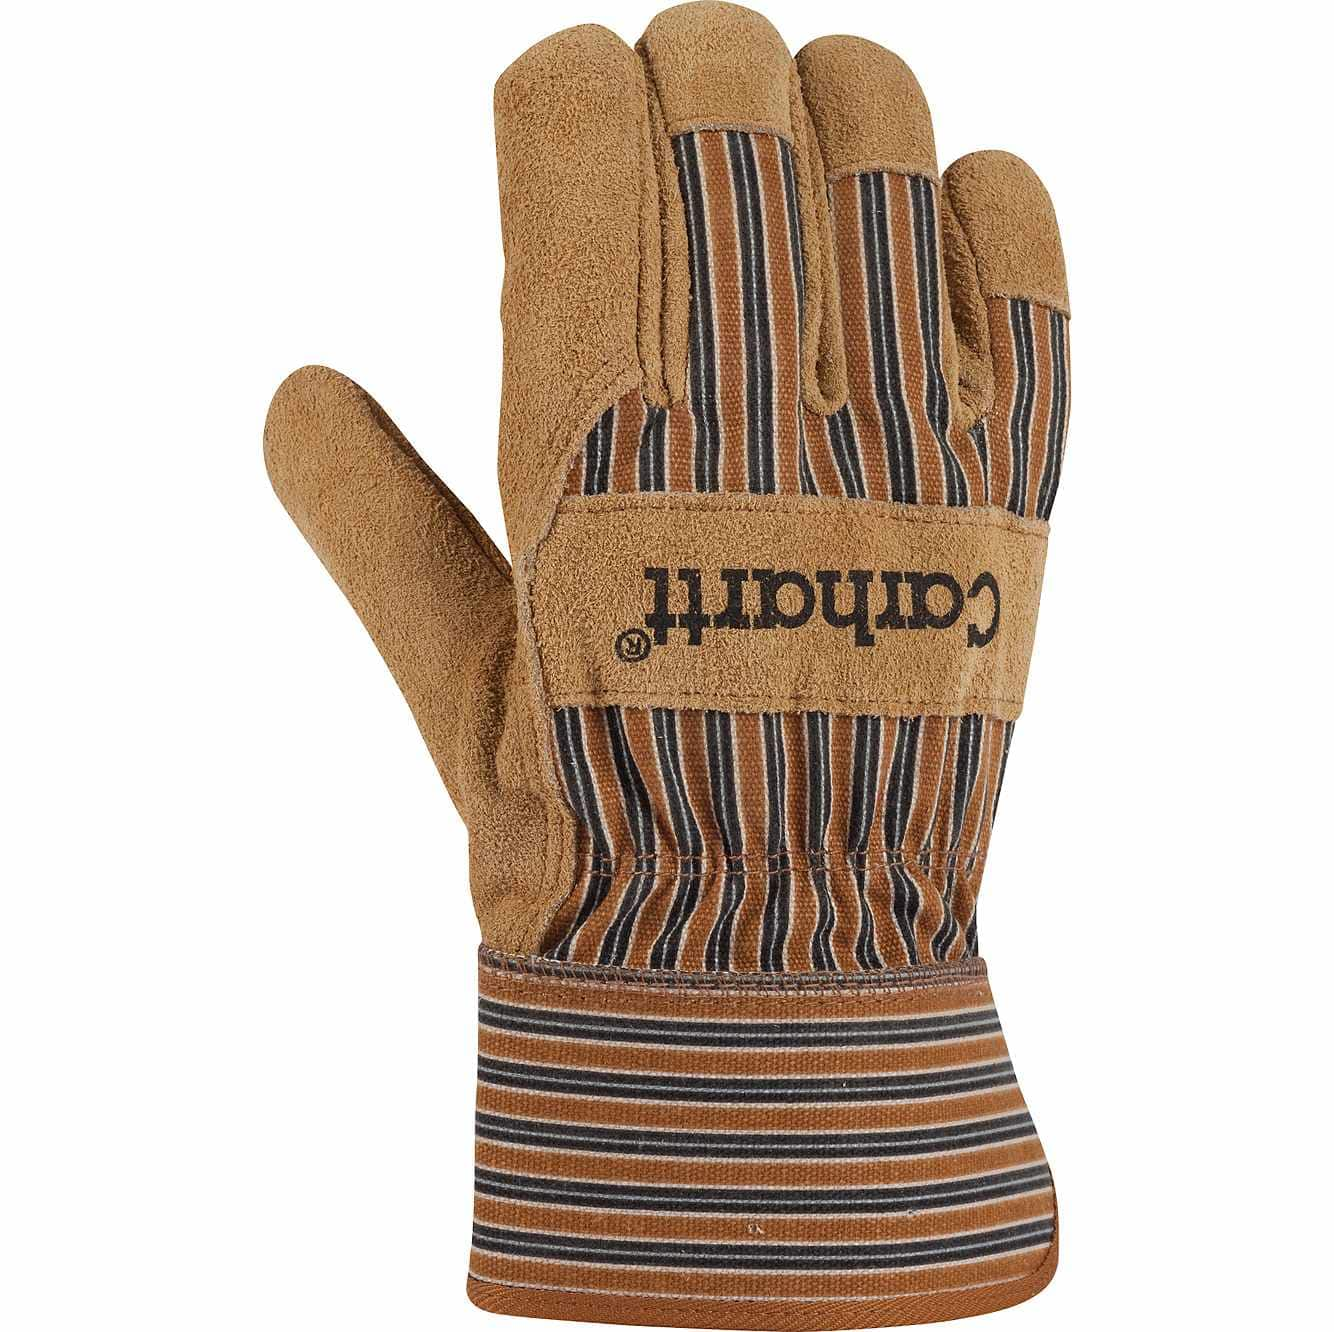 Picture of Insulated Suede Safety Cuff Work Glove in Carhartt Brown